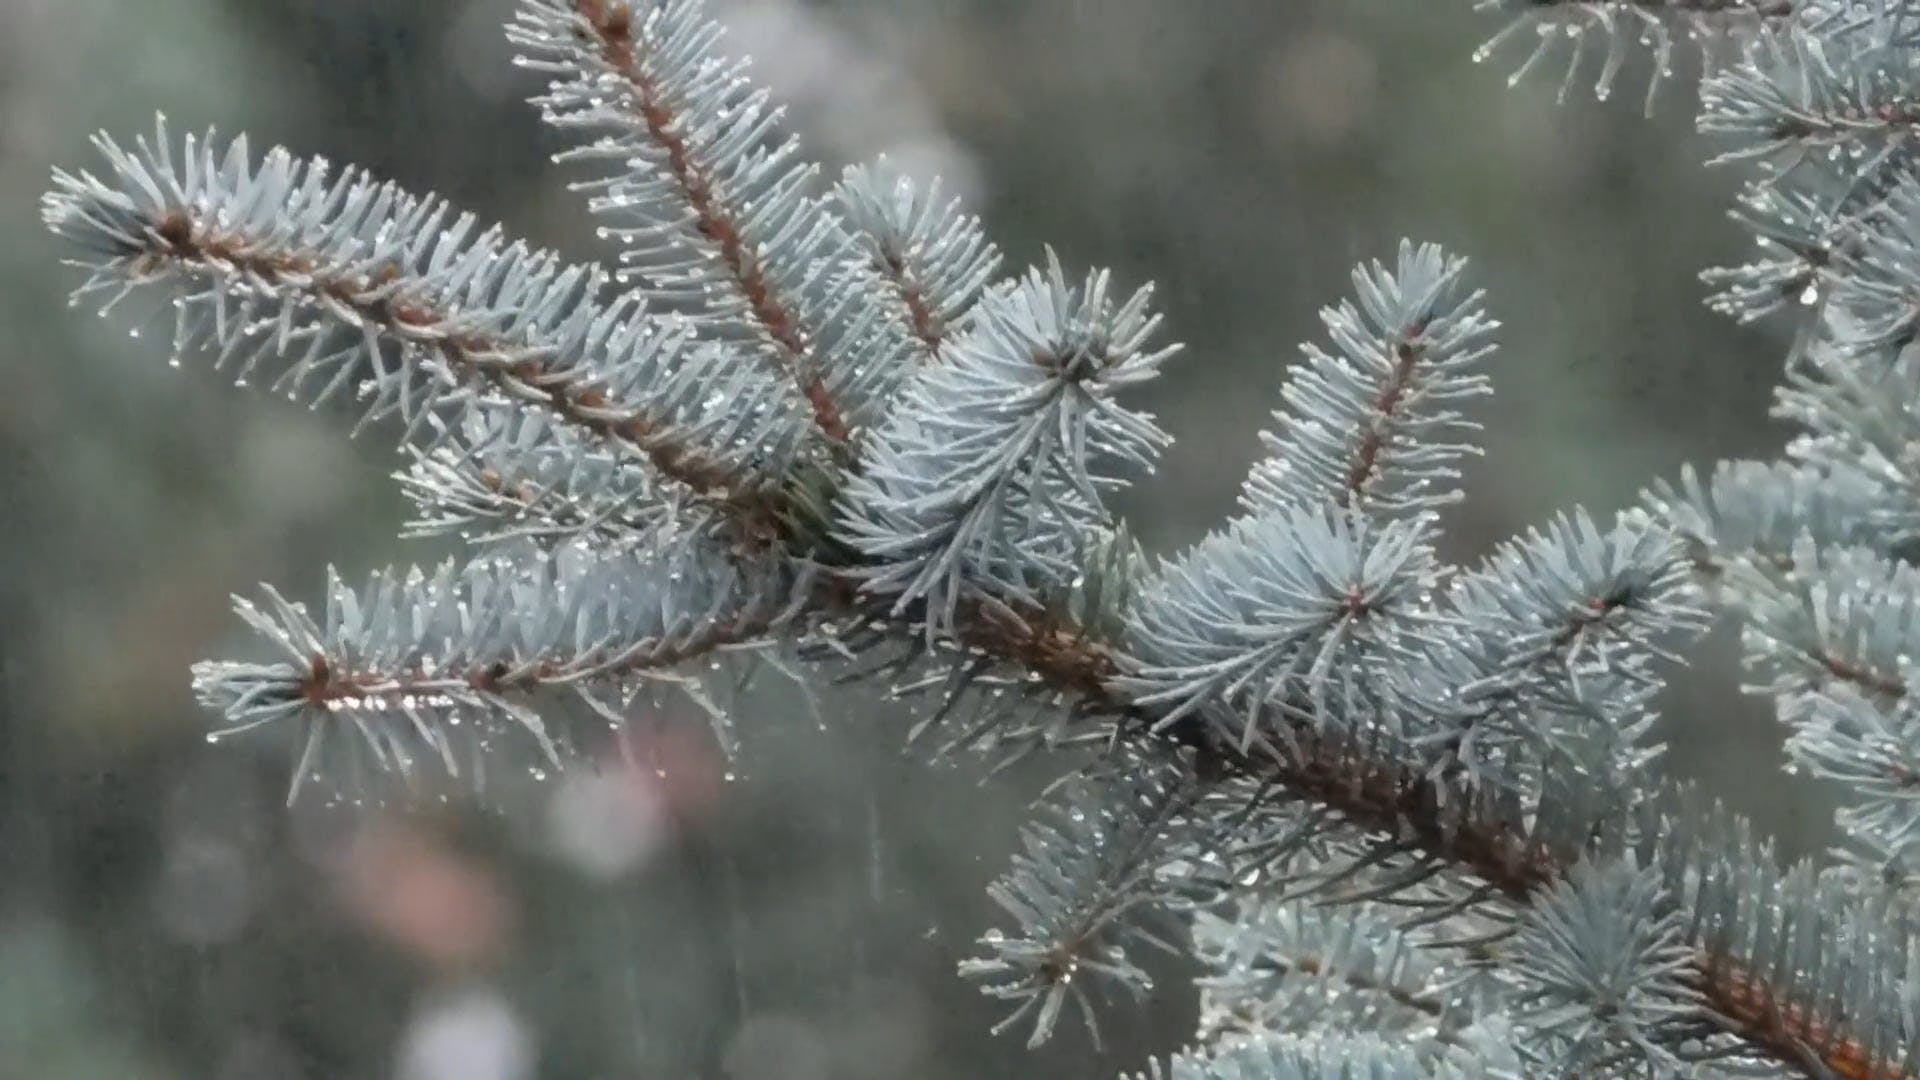 Silver Spruce Branches Under The Rain